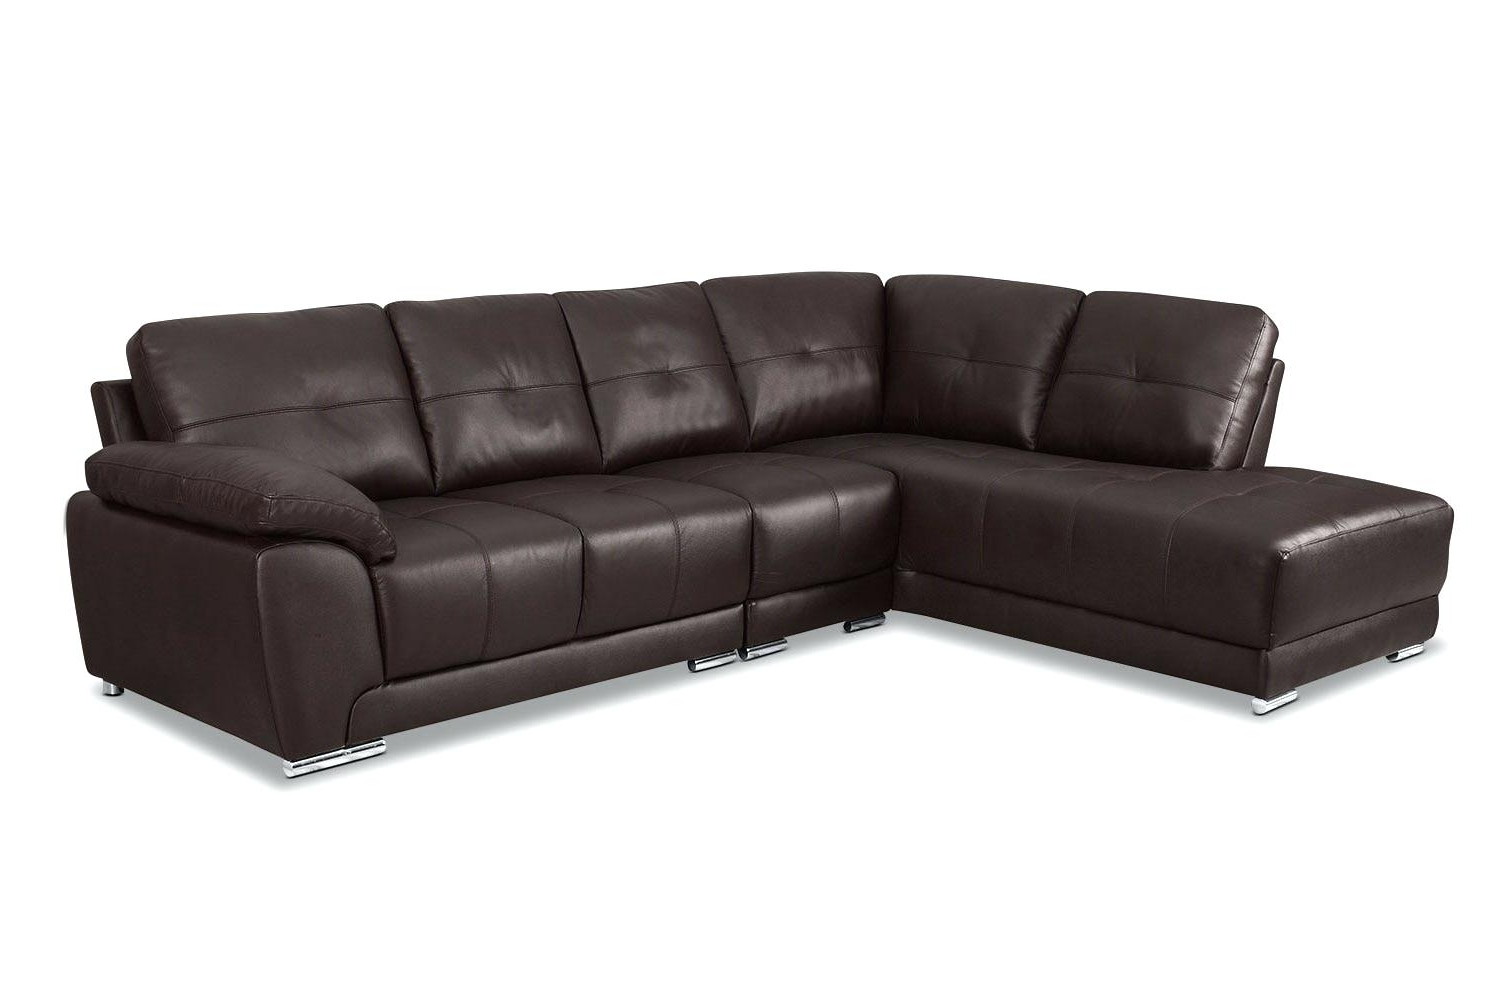 Famous Couches On Clearance Sacheap Sas Es Sofas Free Shipping Leather Regarding Closeout Sofas (View 10 of 15)